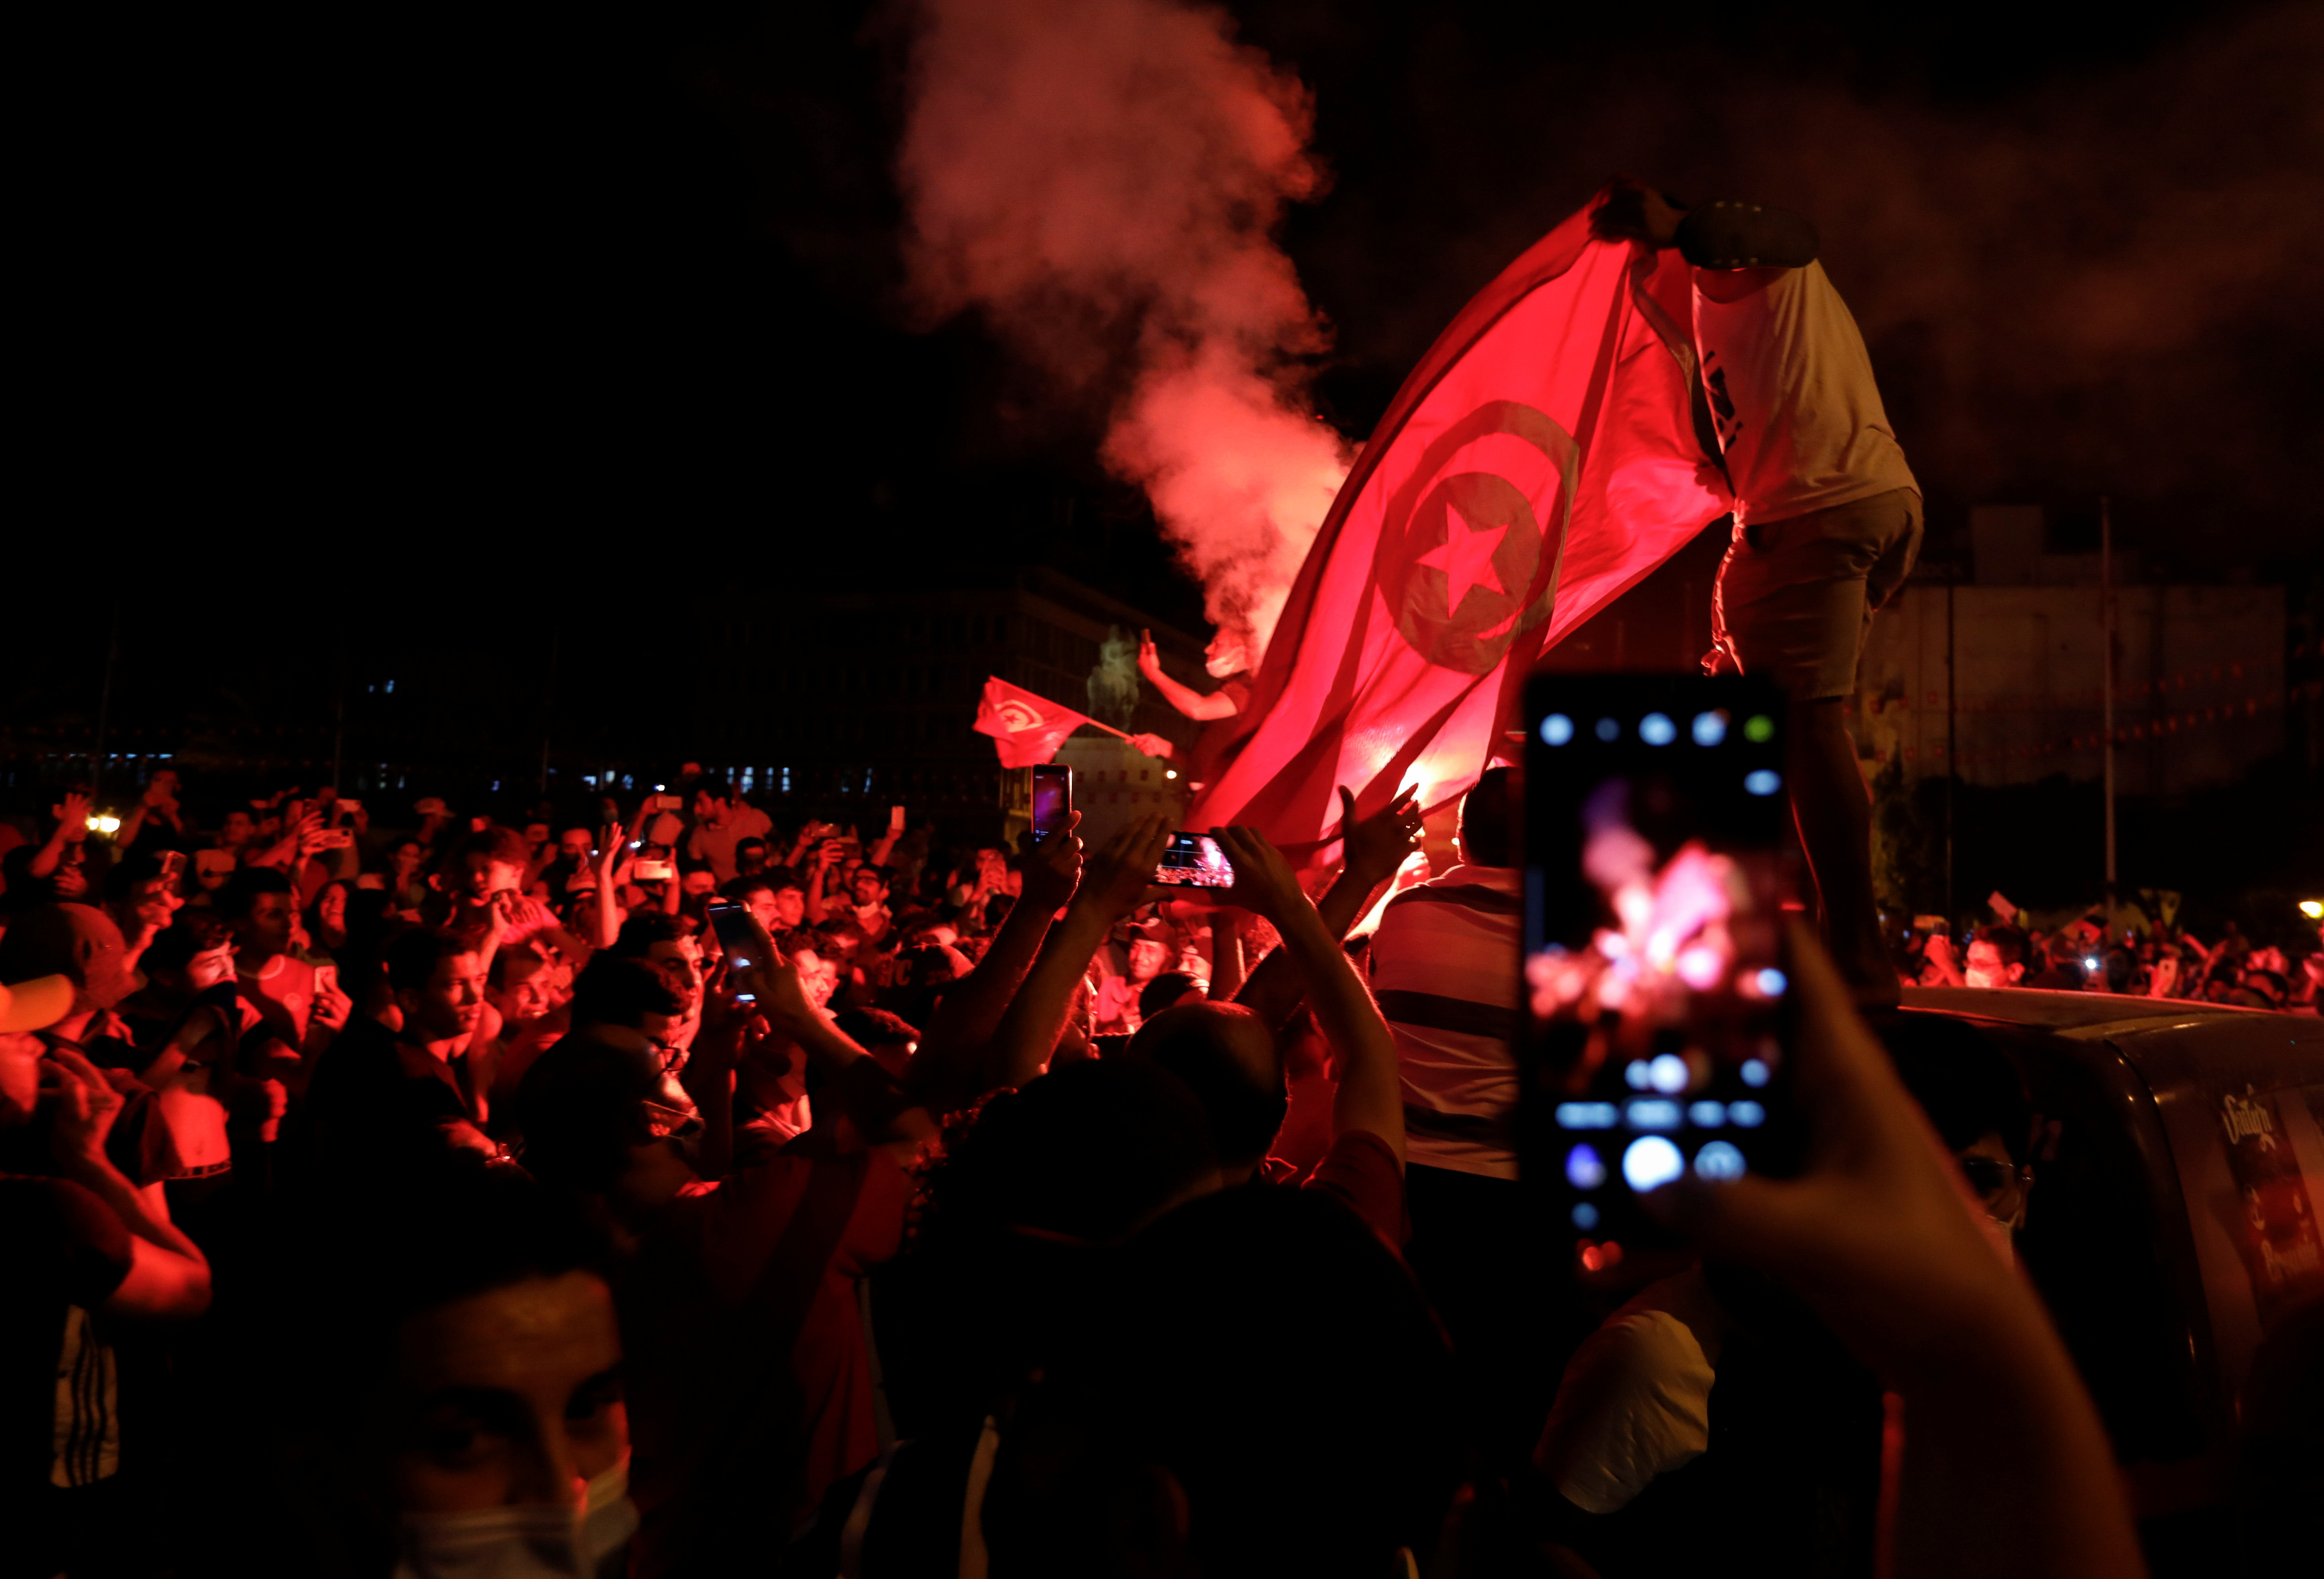 Supporters of Tunisia's President Kais Saied gather on the streets as they celebrate after he dismissed the government and froze parliament, in Tunis, Tunisia July 25, 2021. REUTERS/Zoubeir Souissi